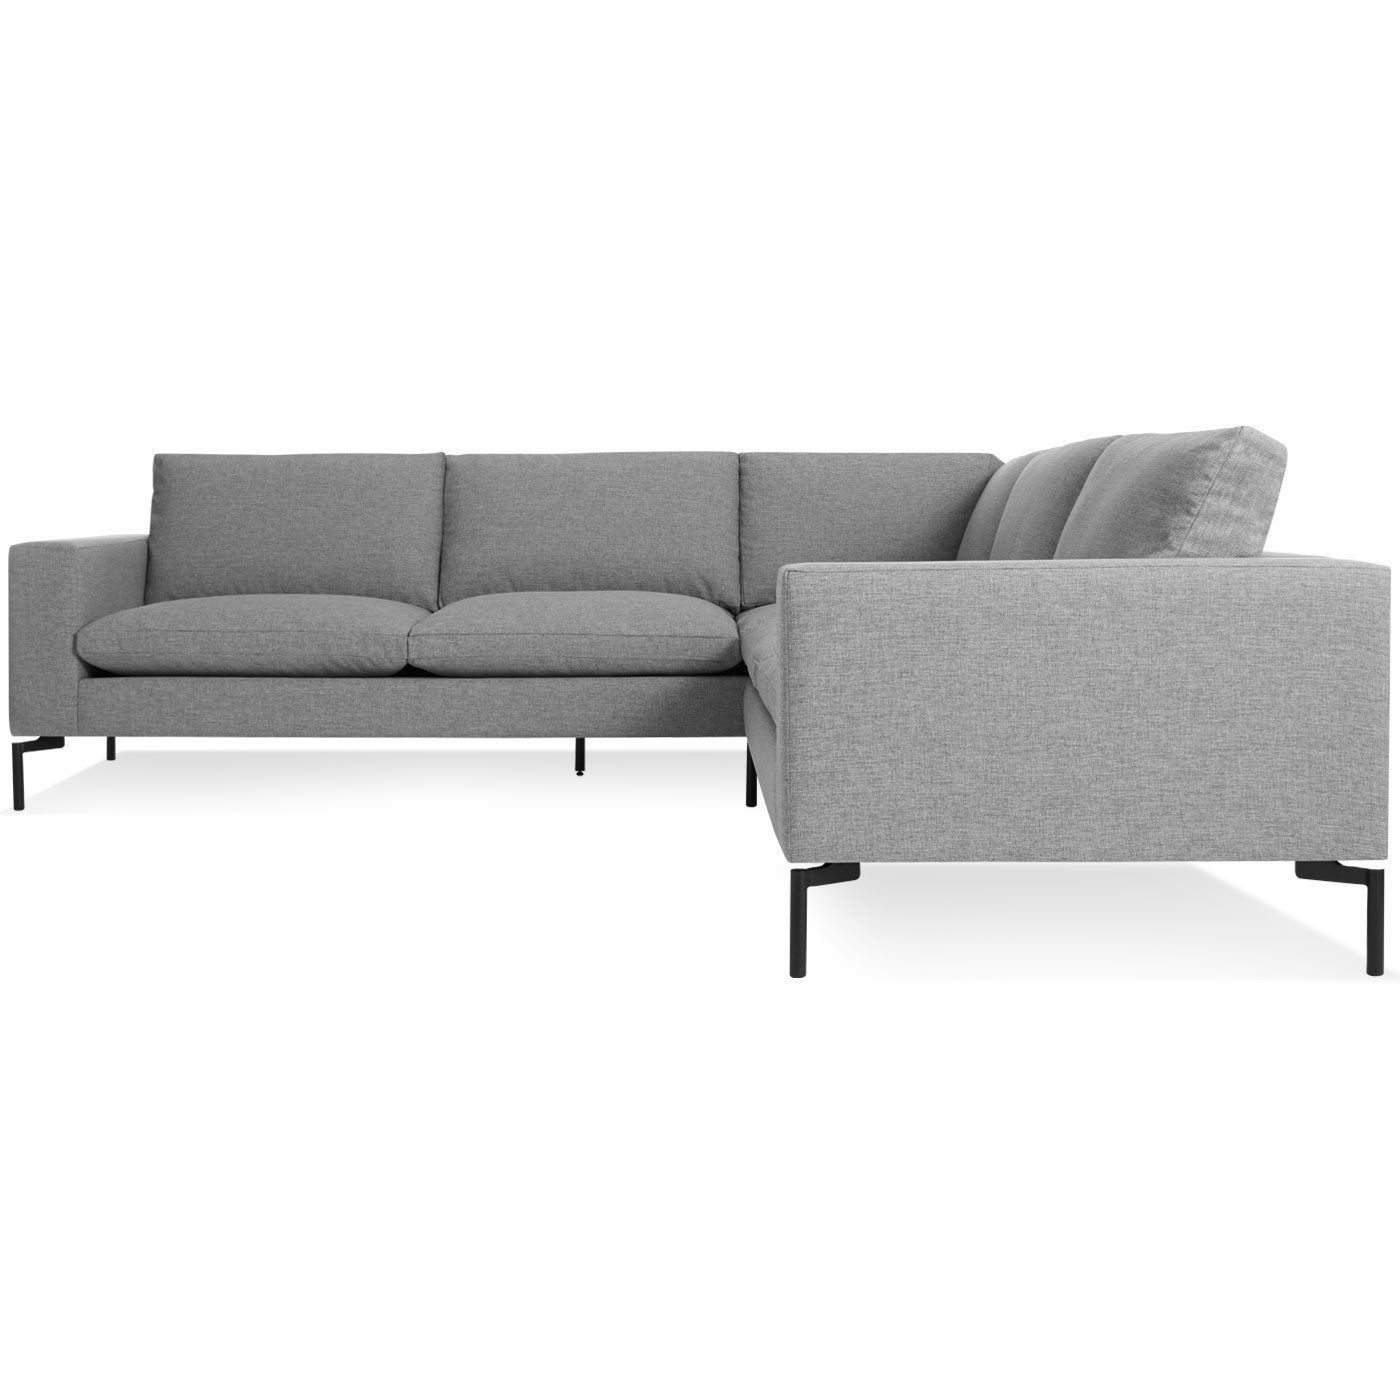 New Standard Sectional Sofa Small Small Sectional Sofa